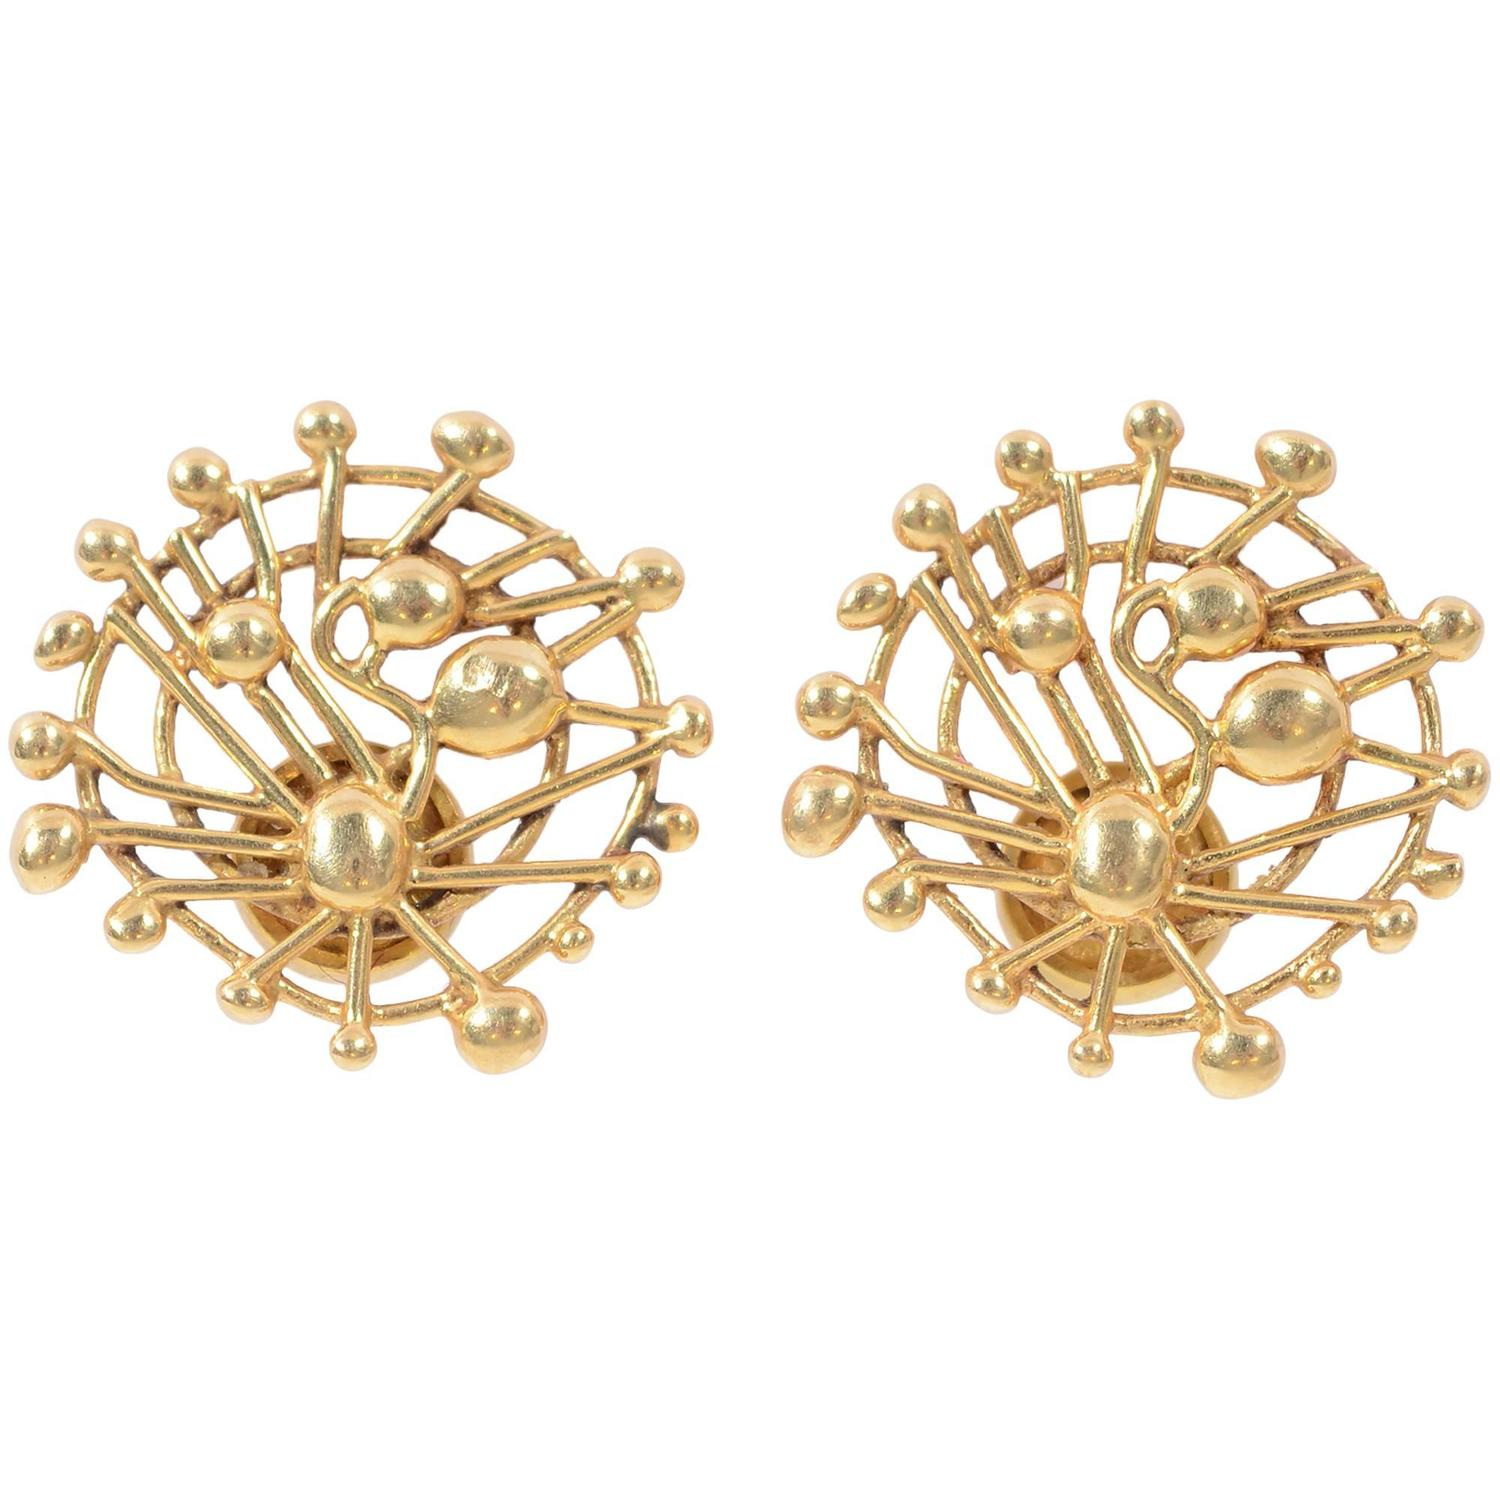 Yafa signed jewels new york ny 1stdibs page 4 - Juan Soriano Gold Earrings For Tane